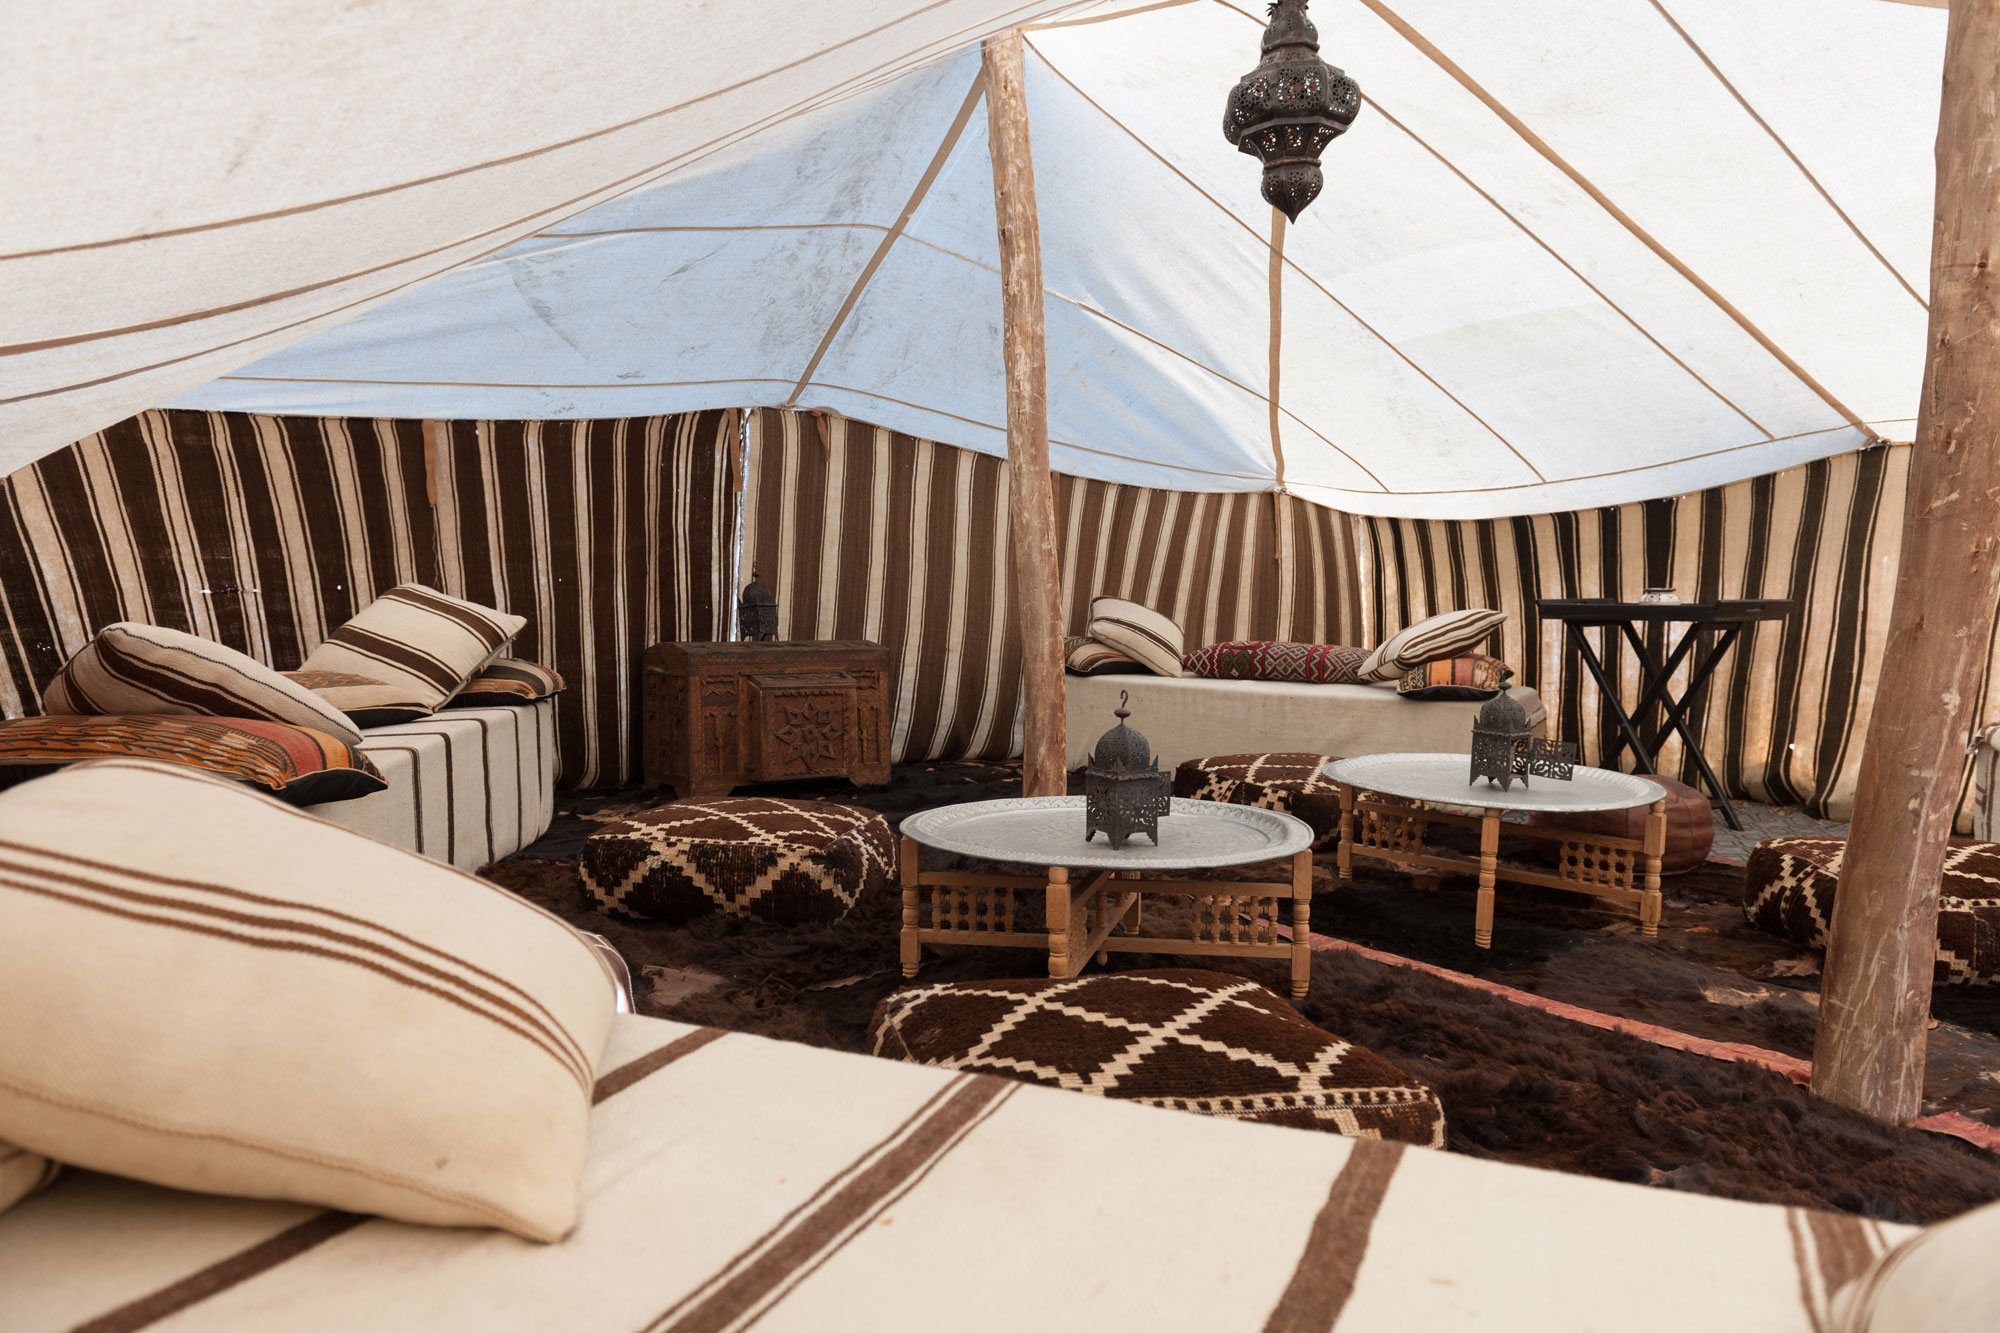 Camp-Adounia-Luxury-tented-camp-booking.jpg